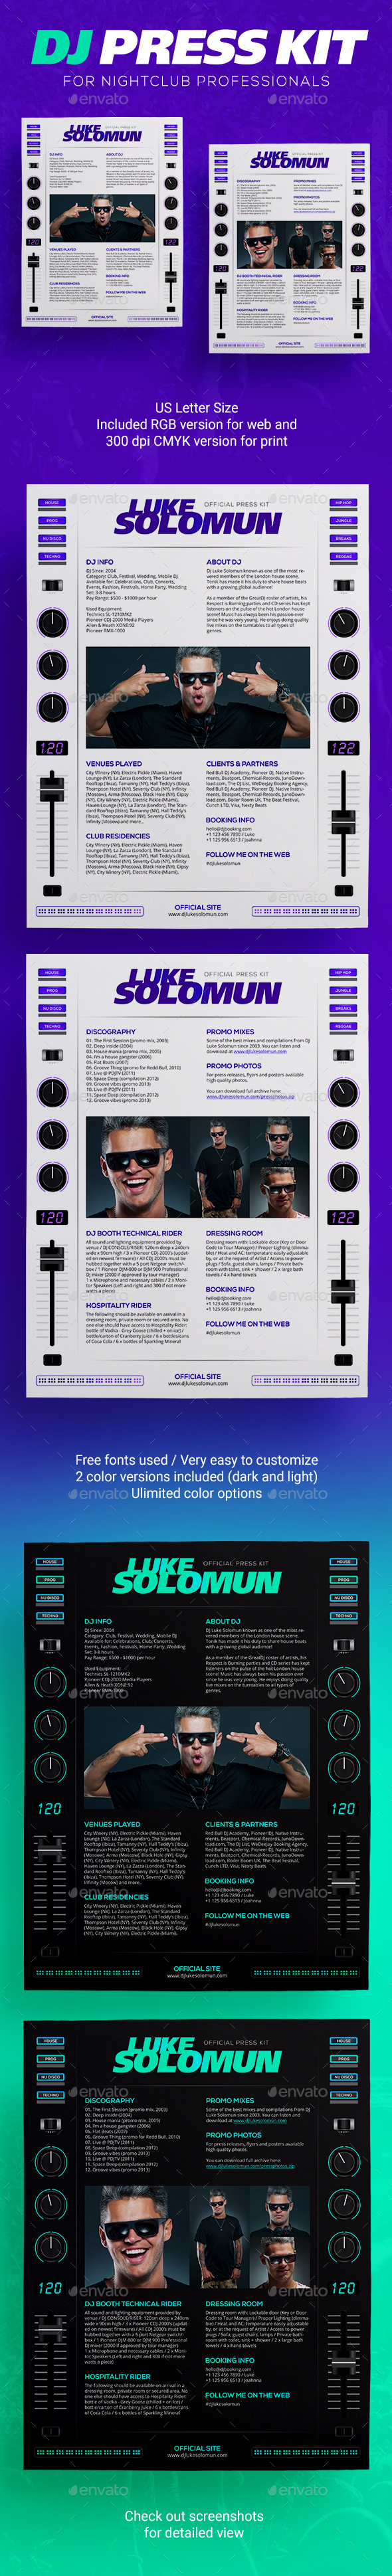 MaDJestik - DJ Press Kit / DJ Resume / DJ Rider PSD Template